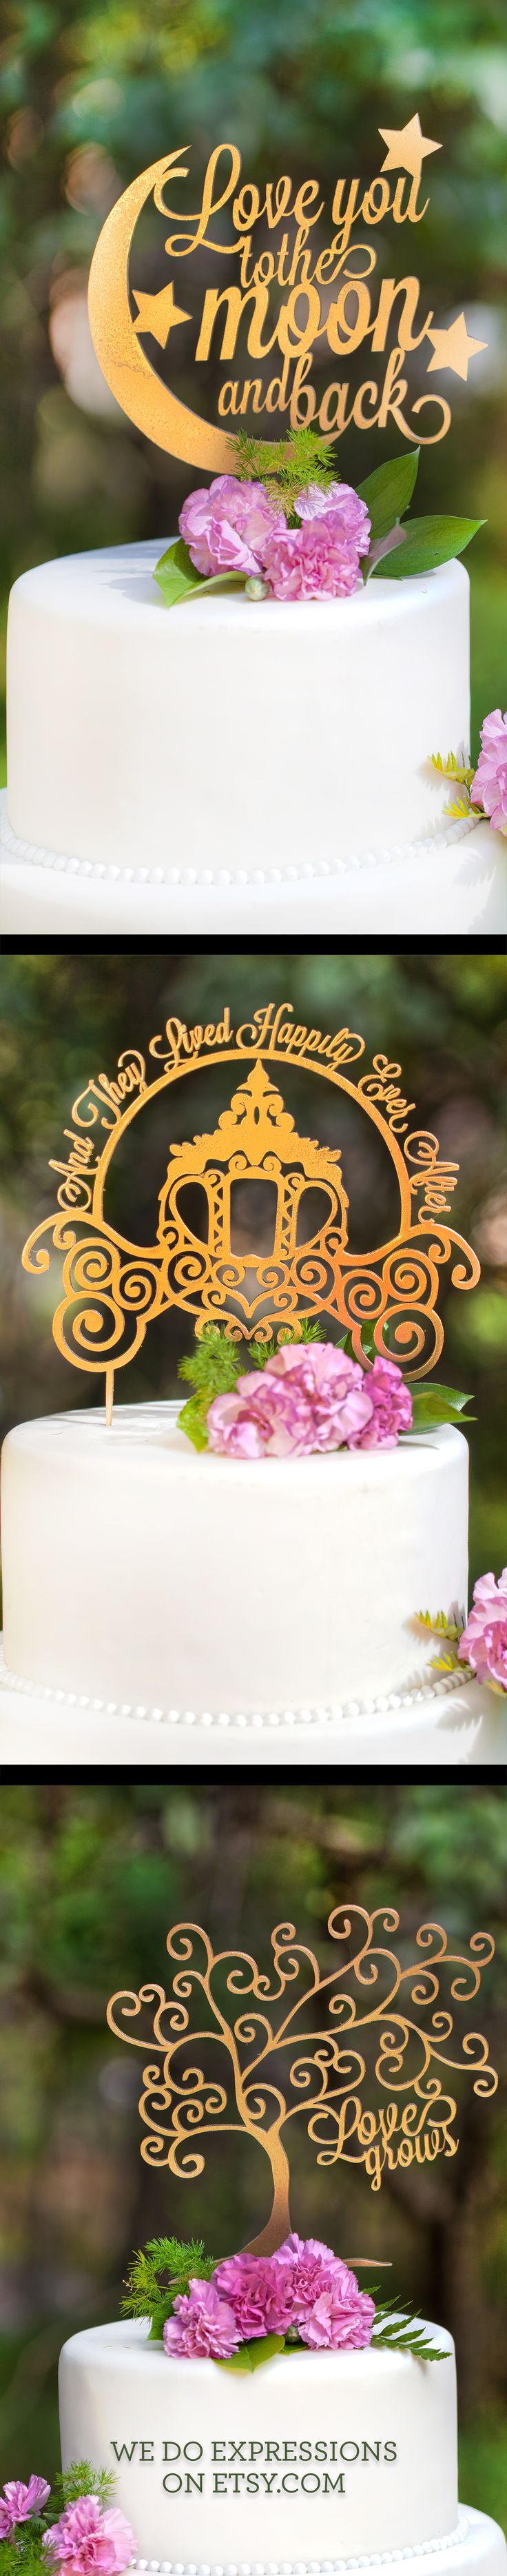 Itus perfect we love it it will look lovely on the cake and